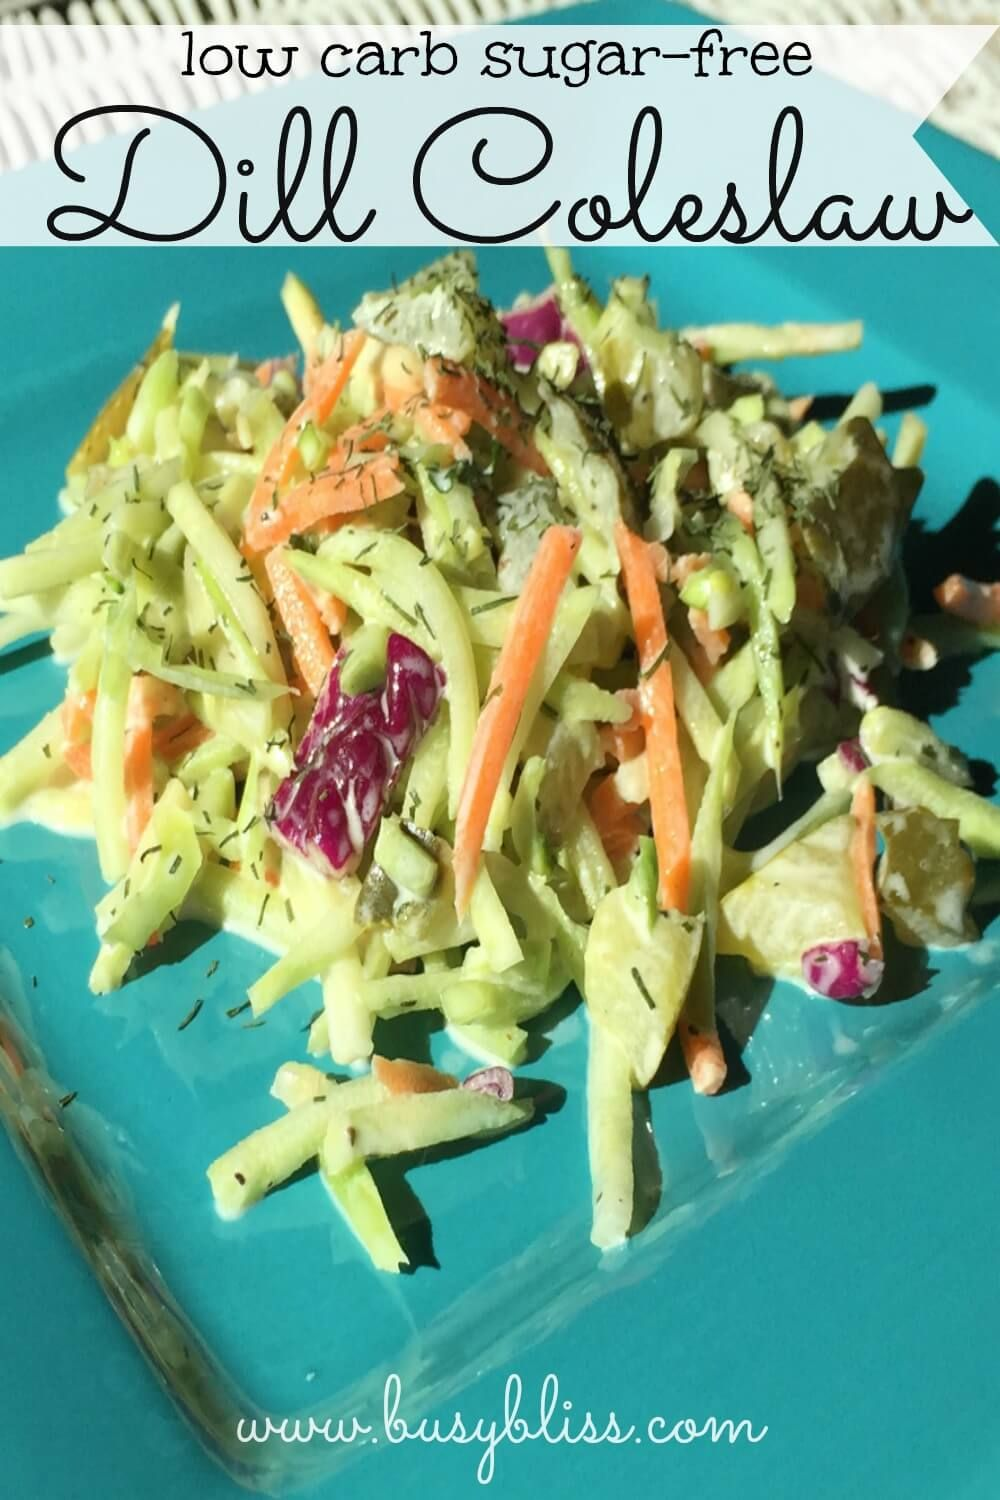 Dill Coleslaw {low carb, sugar-free} - Busy Bliss